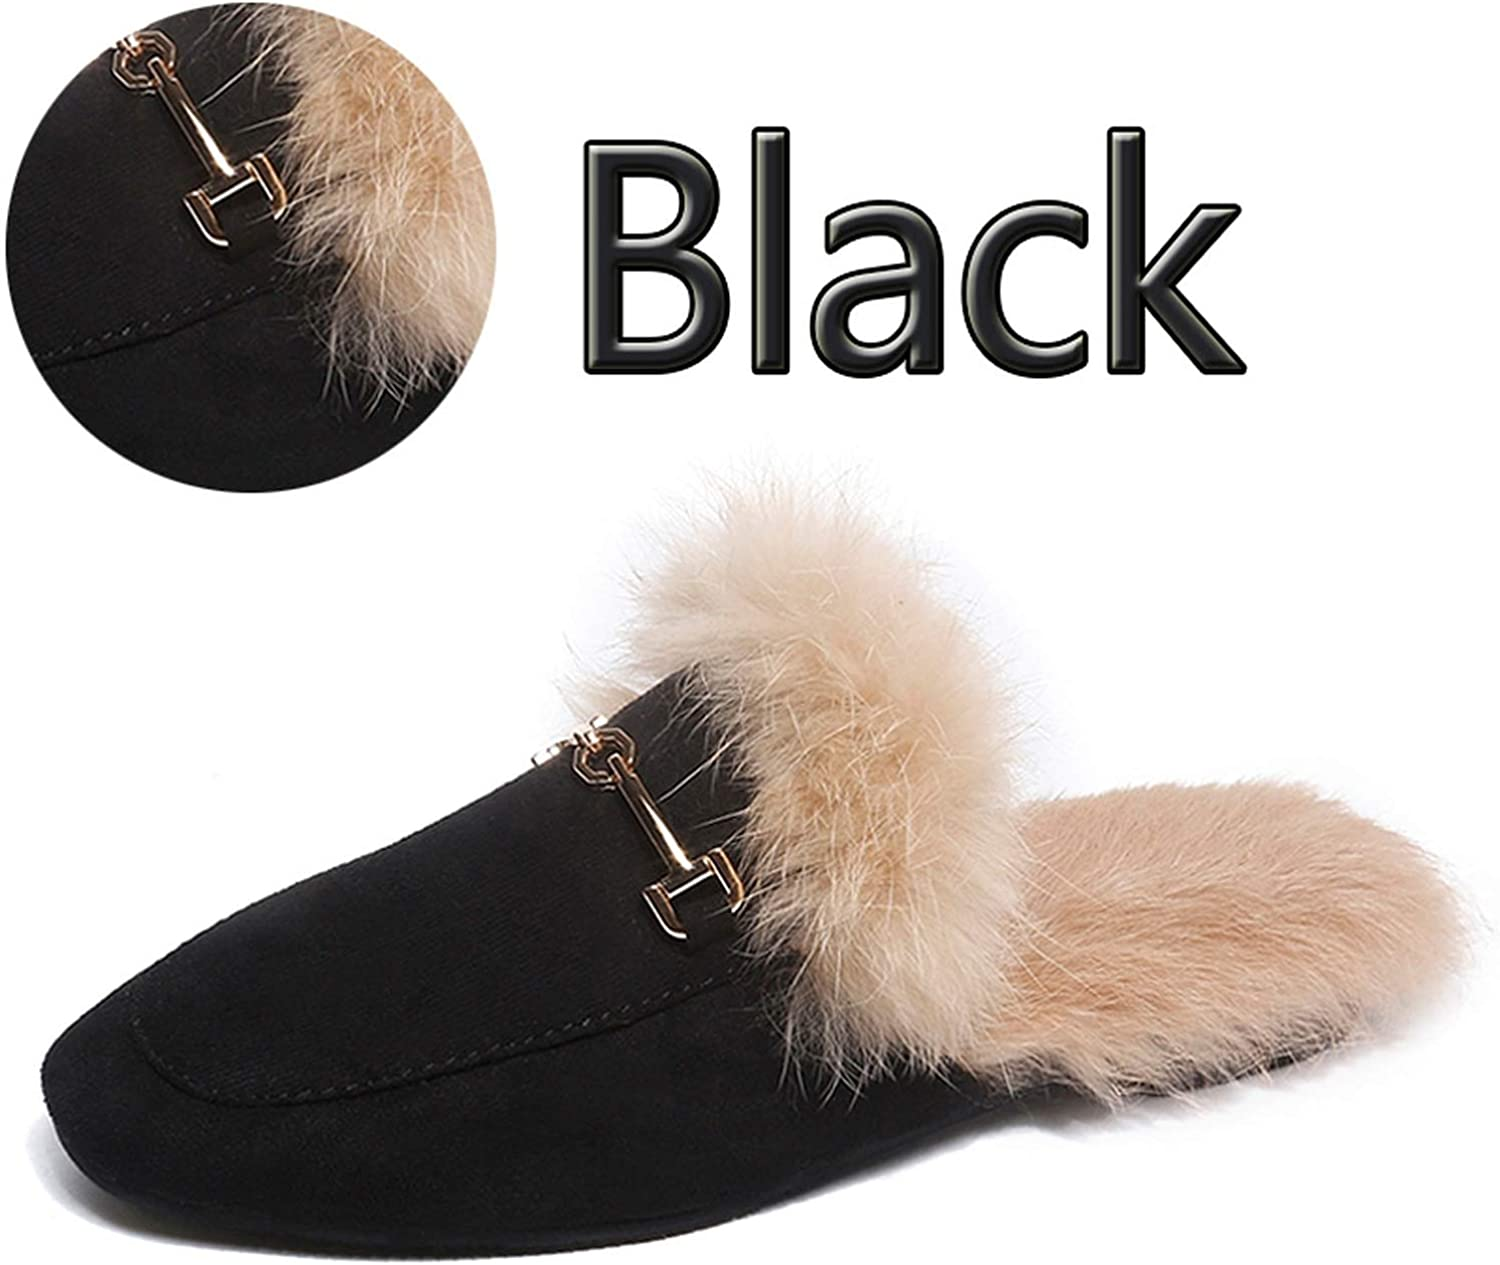 Real Slippers shoes Woman Mules Women's ry Slippers Winter Warm Women shoesRabbit Hair